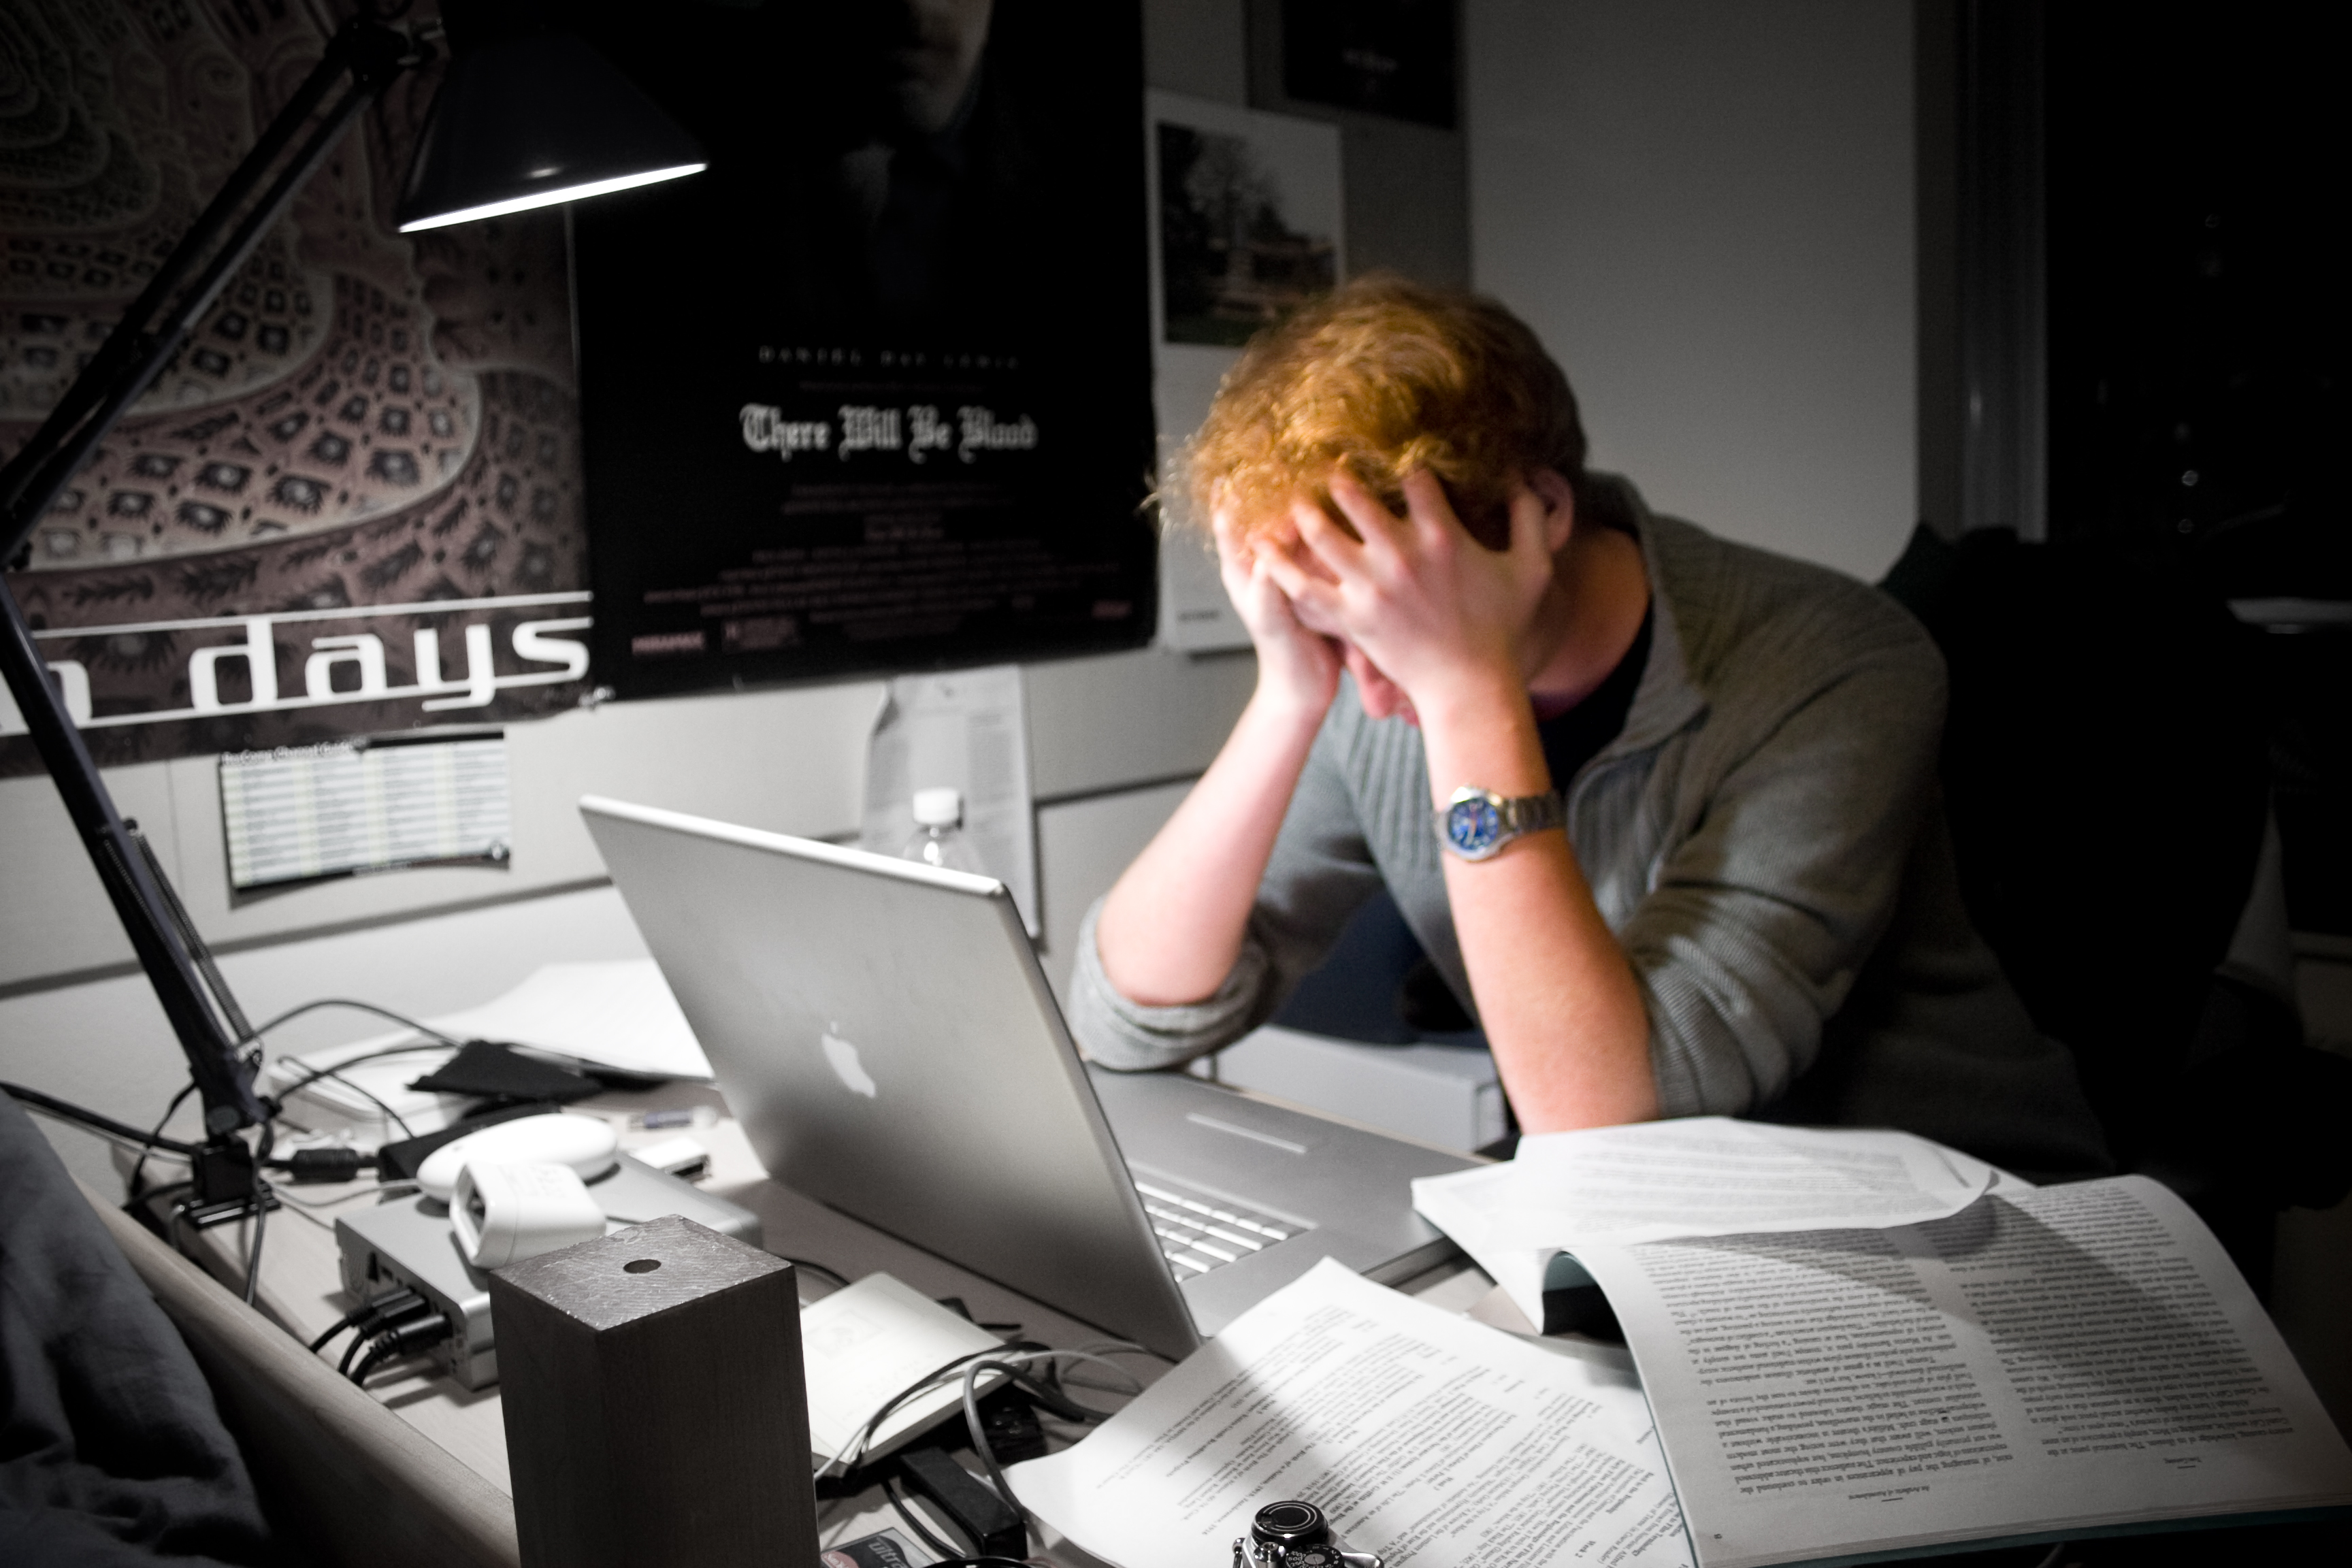 A visibly frustrated man with his head in his hands in front of his laptop and papers.